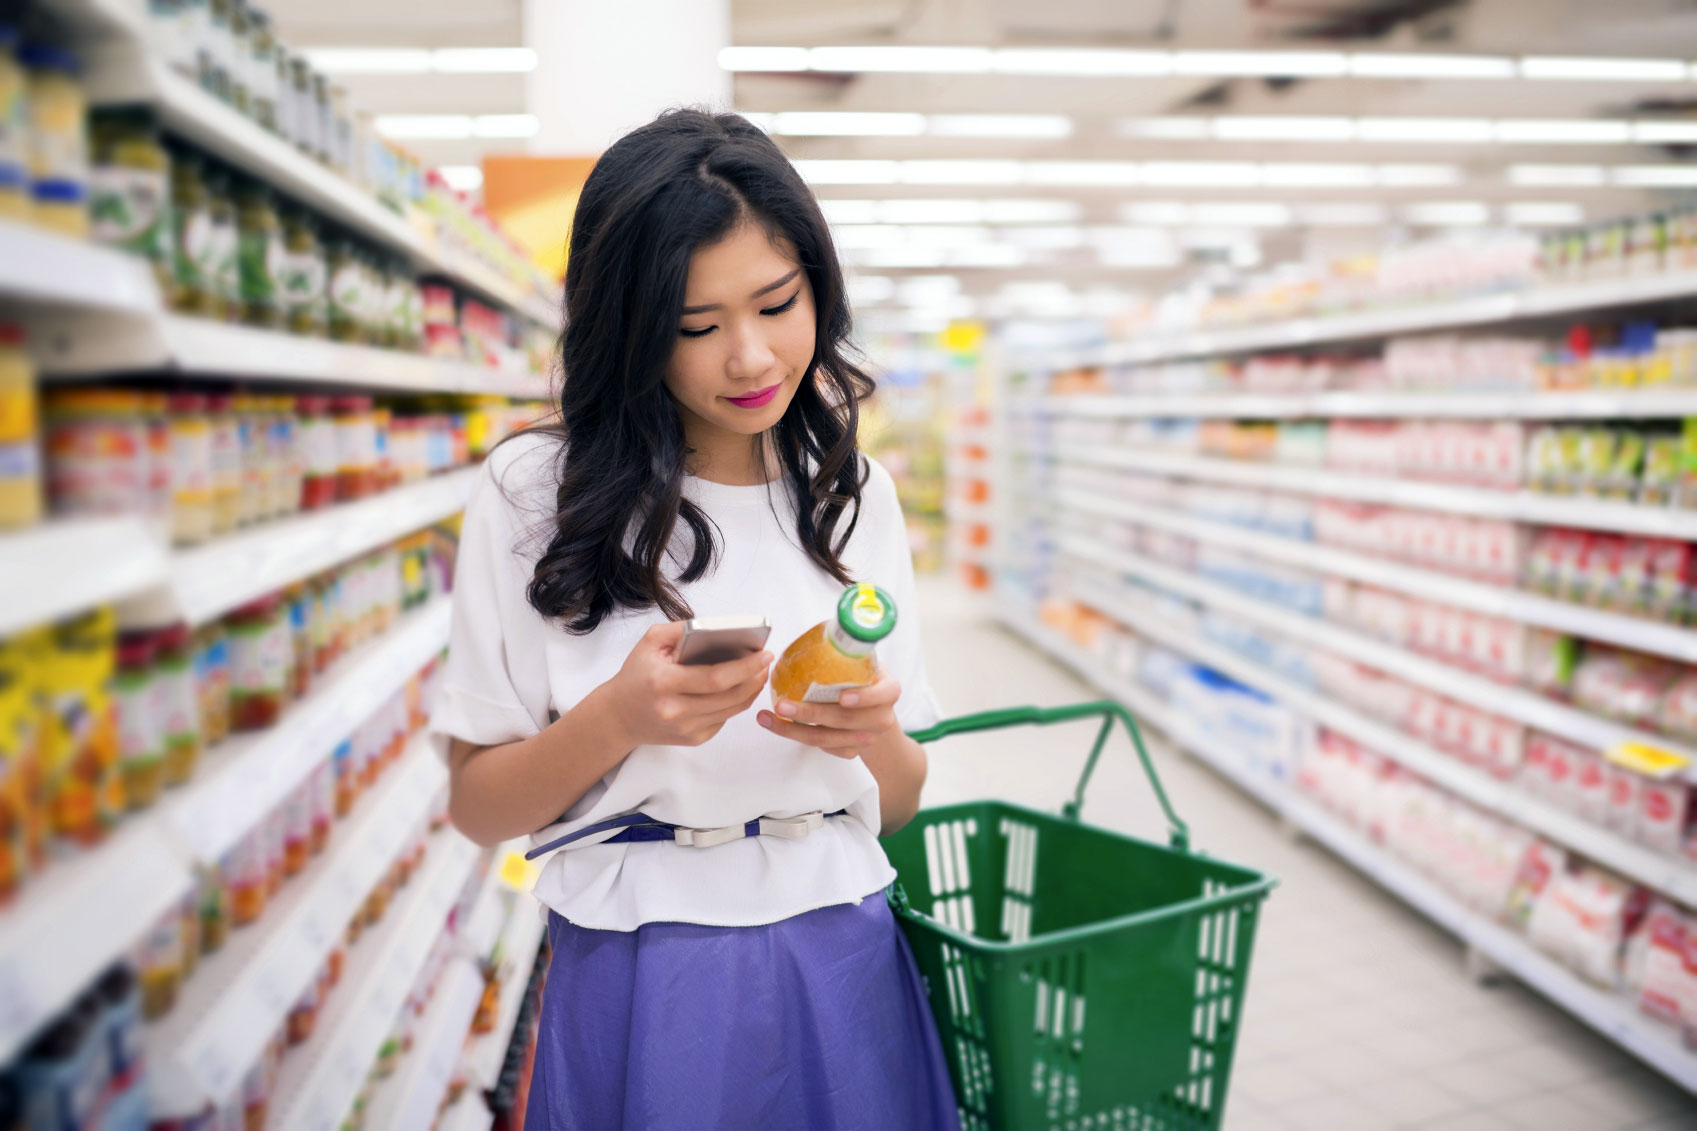 woman holding orange juice while grocery shopping